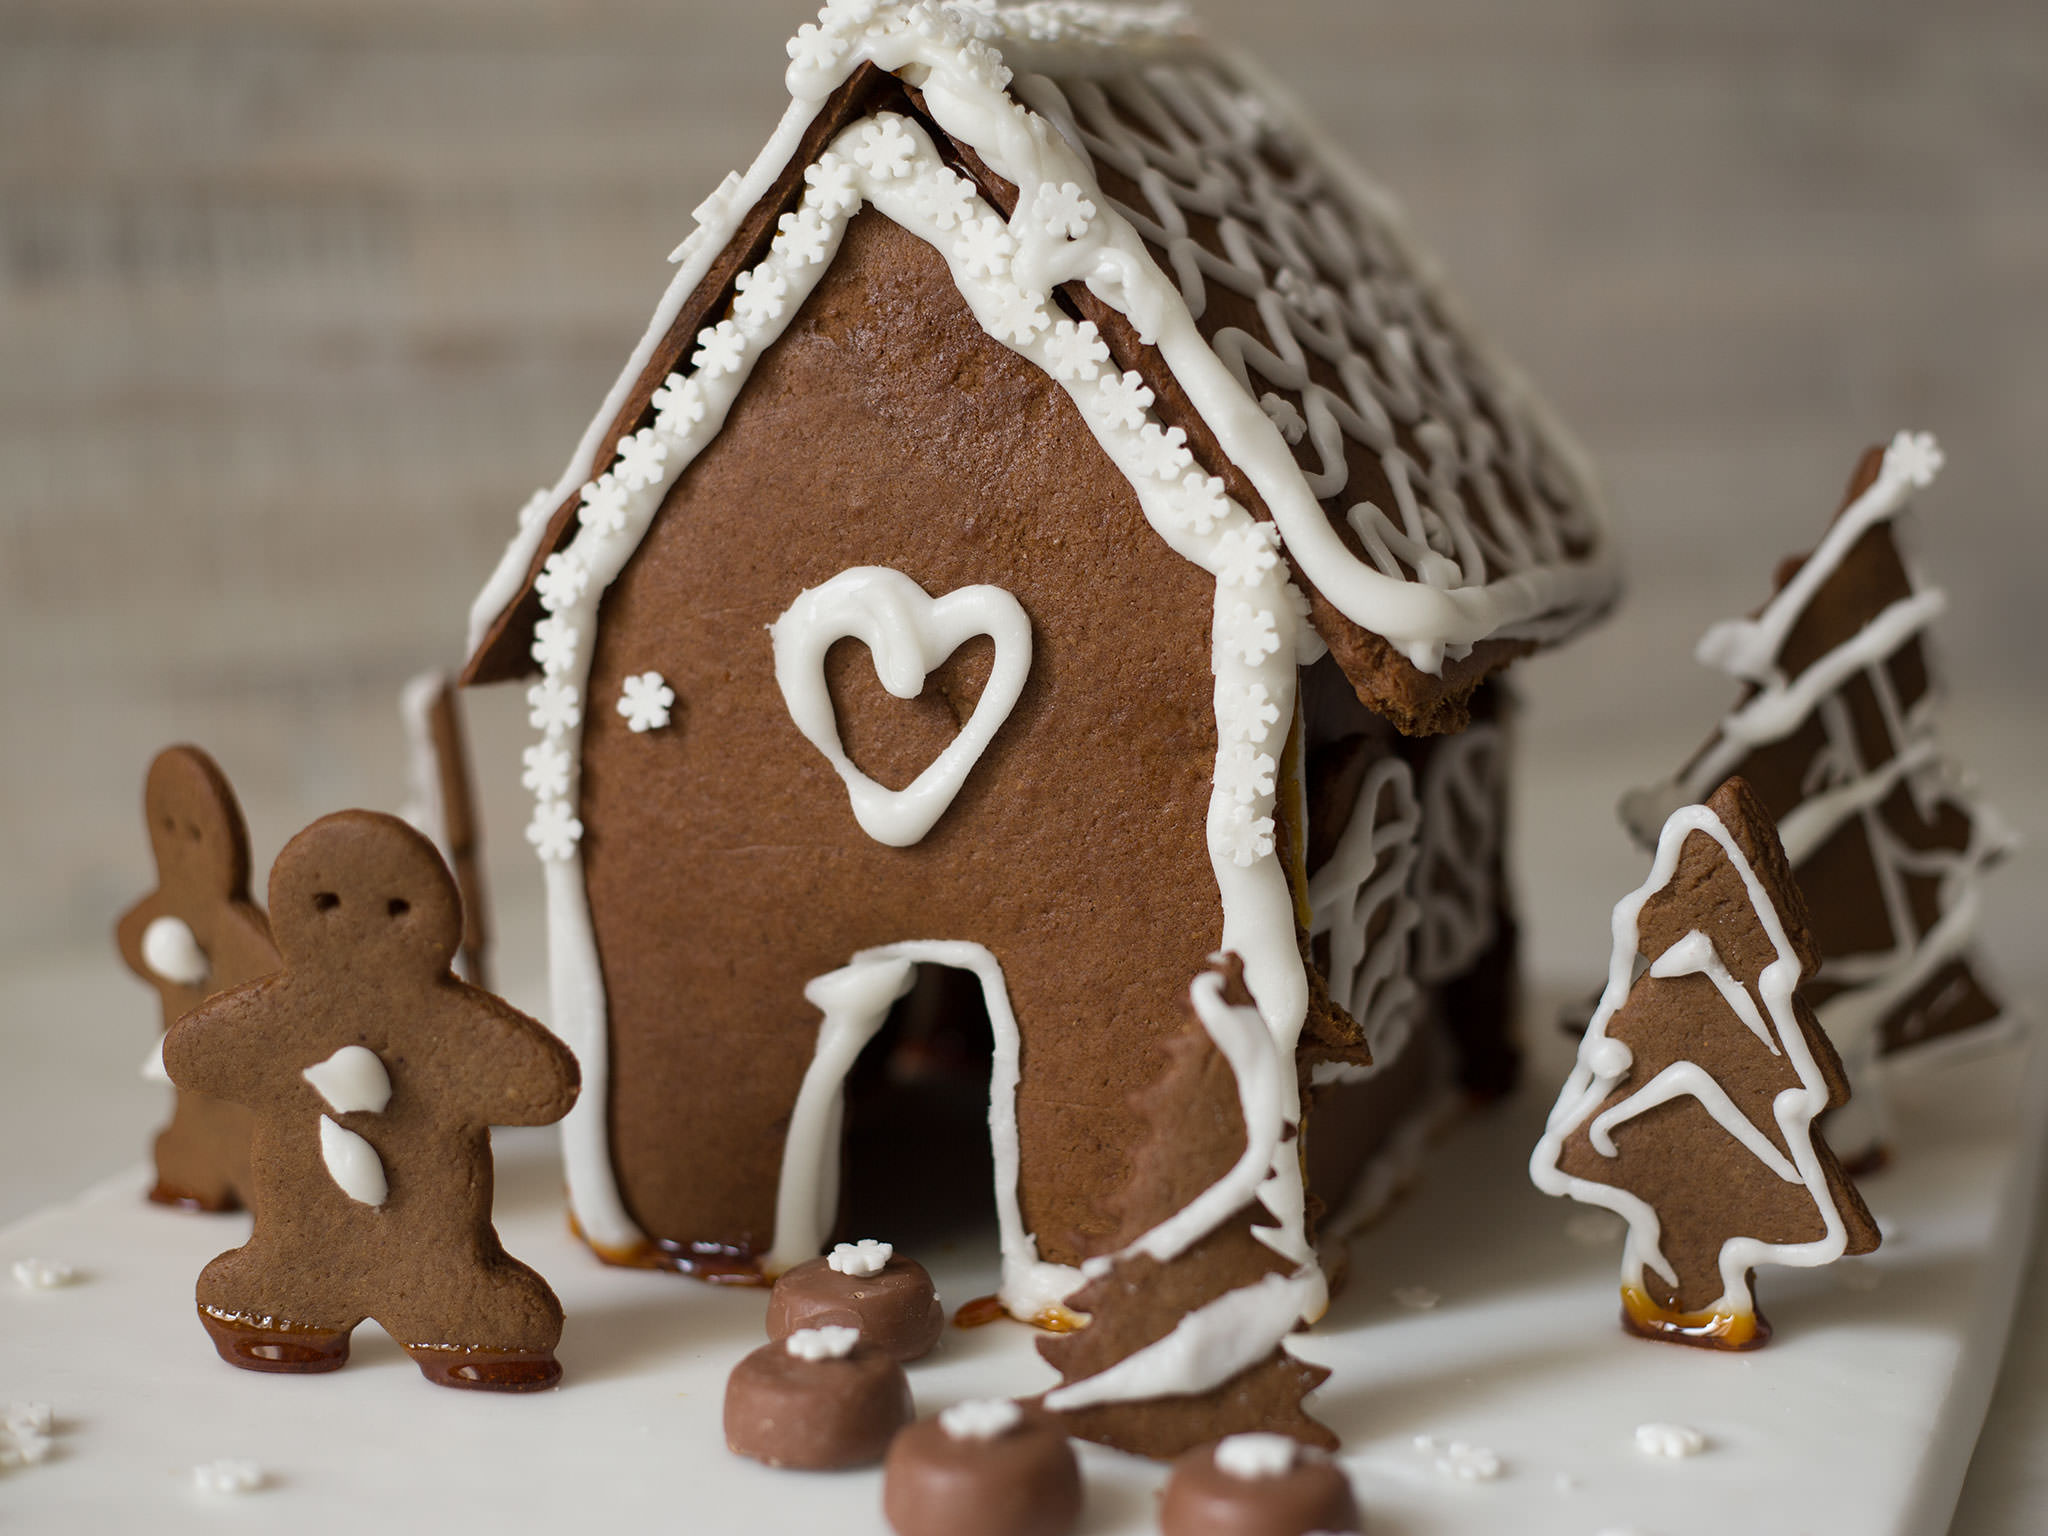 Gingerbread house recipes kitchen stories